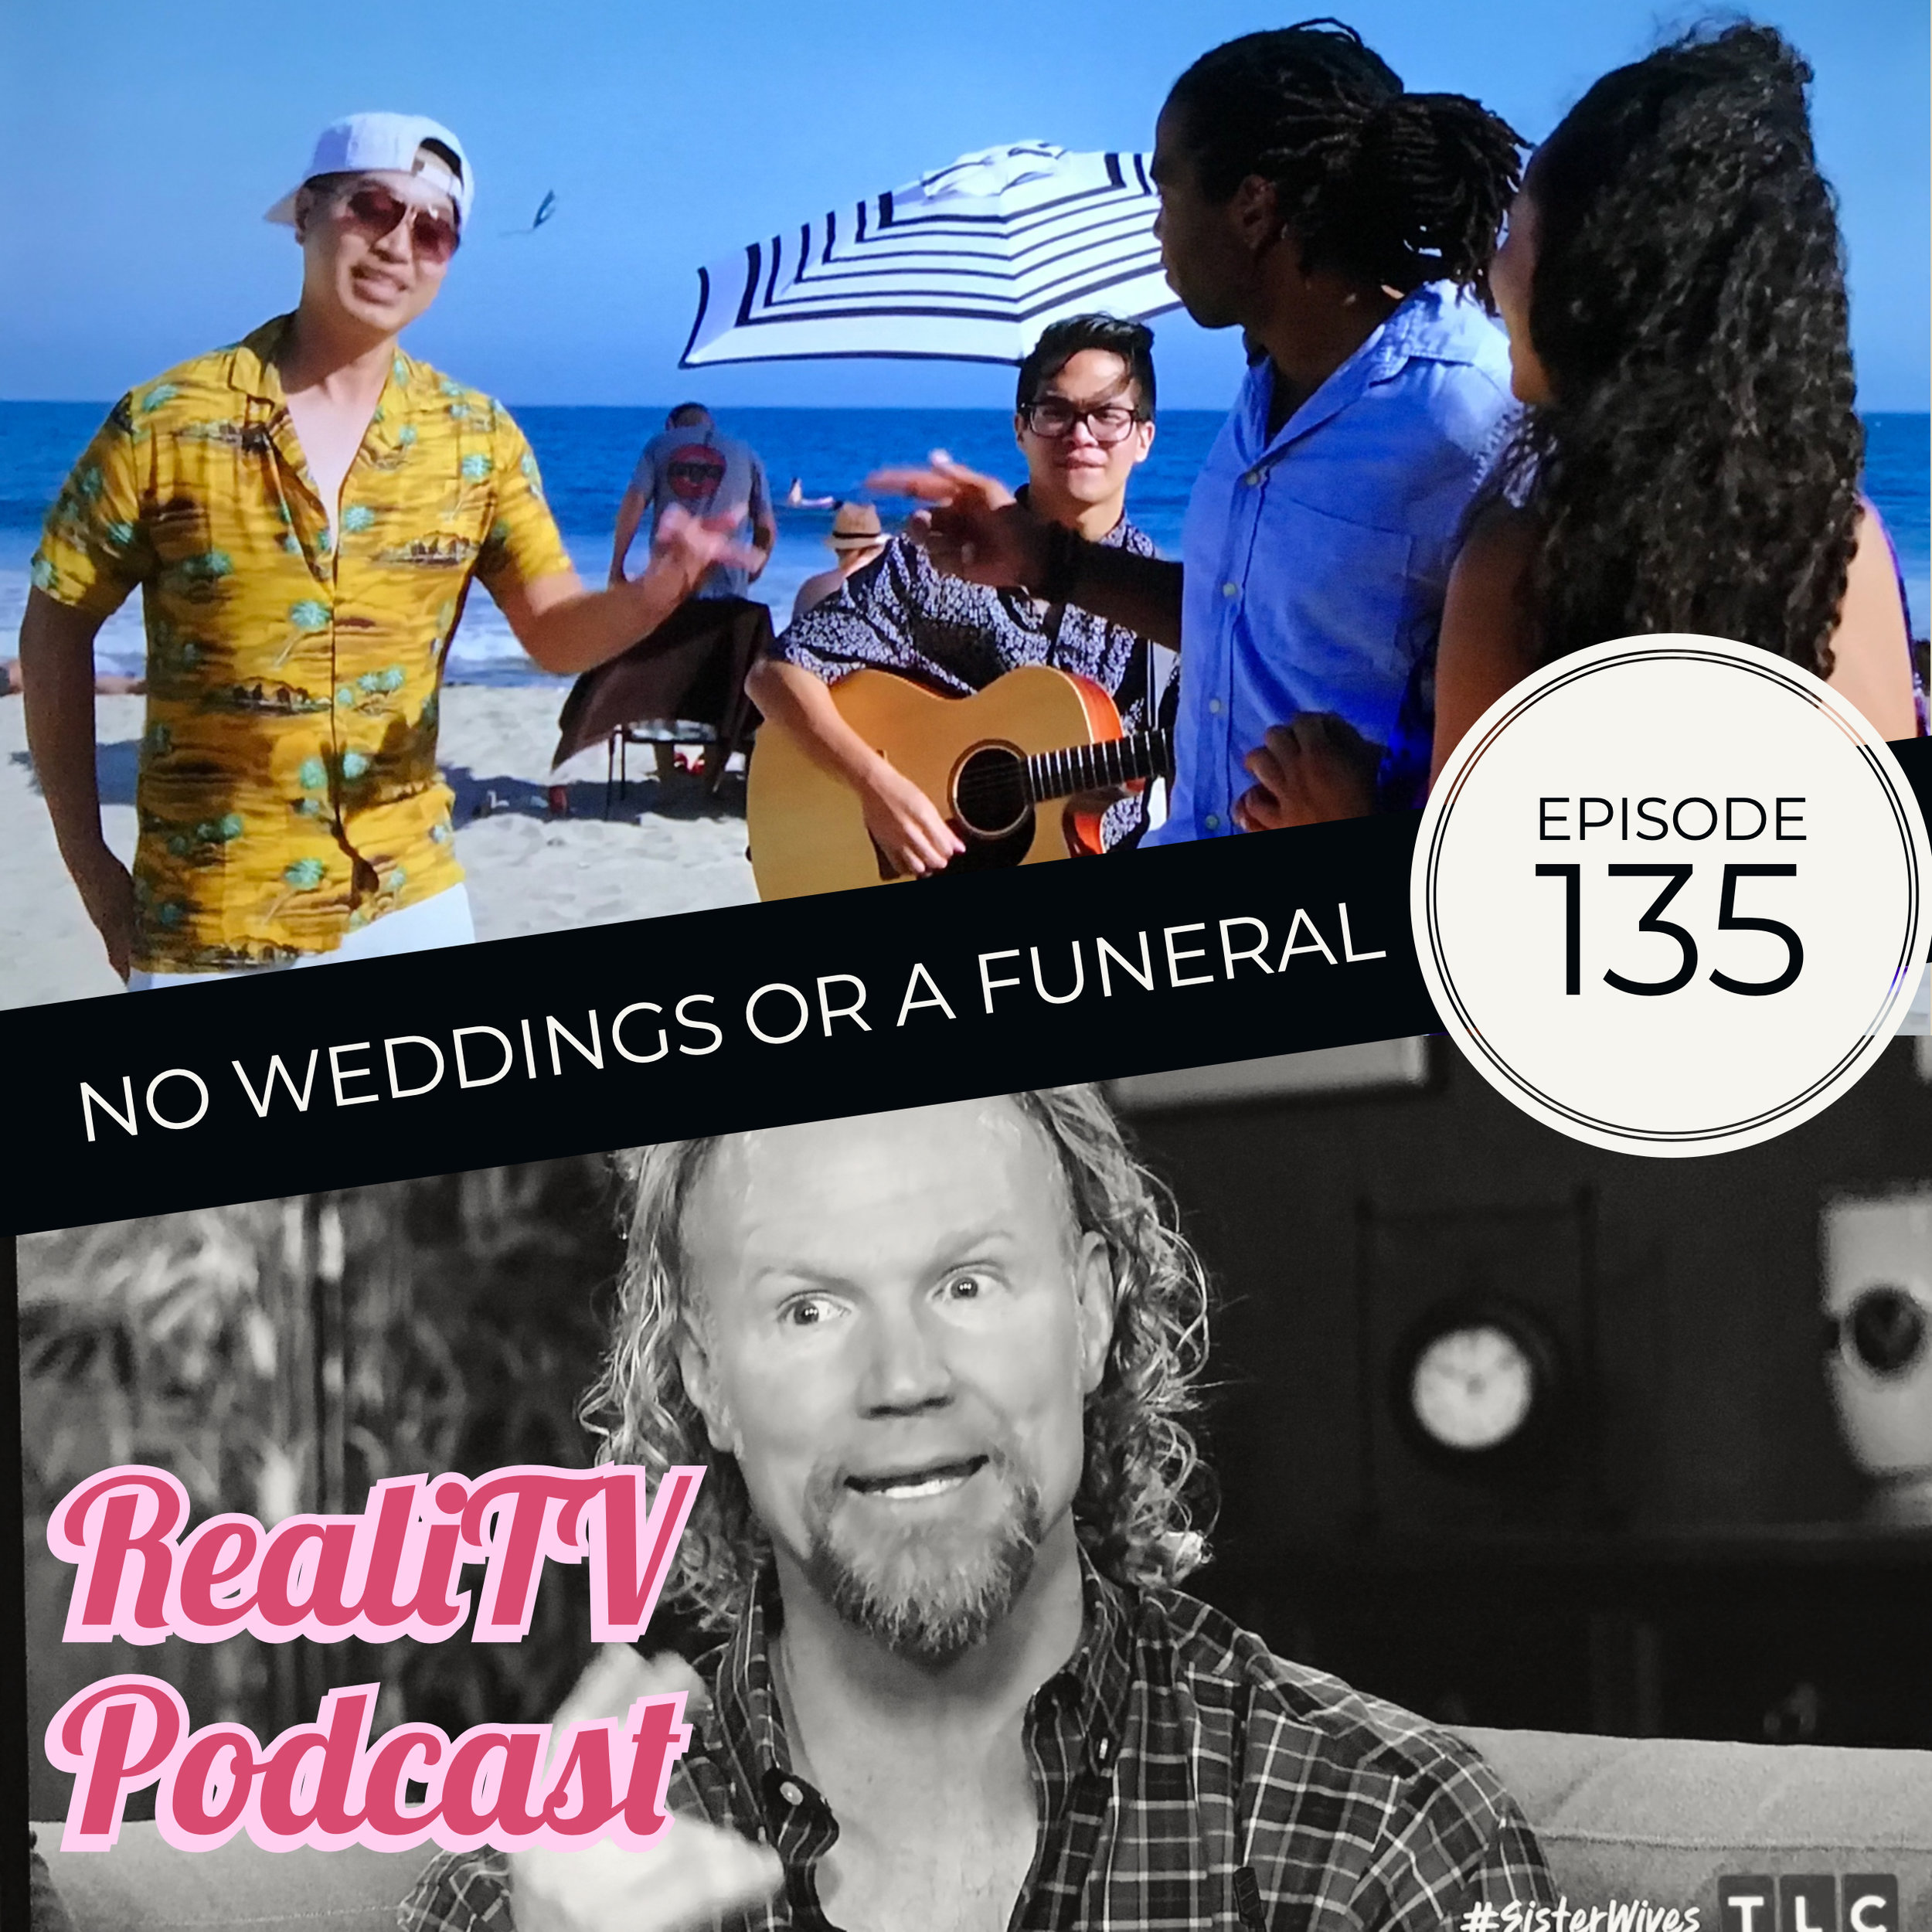 Ep 135: No Weddings or a Funeral - April Fools! You're getting this week's episode early & ad-free because I love joking around with you :)Enjoy some smack talking of Trading Spaces, Seeking Sister Wife and Sister Wives!*PATREON Bonus Episodes, ad-free episodes, free merch & more at www.patreon.com/realitvpod*Total Request Podcast at www.patreon.com/amandaandjodieYOU request the shows, WE watch them & break em down!